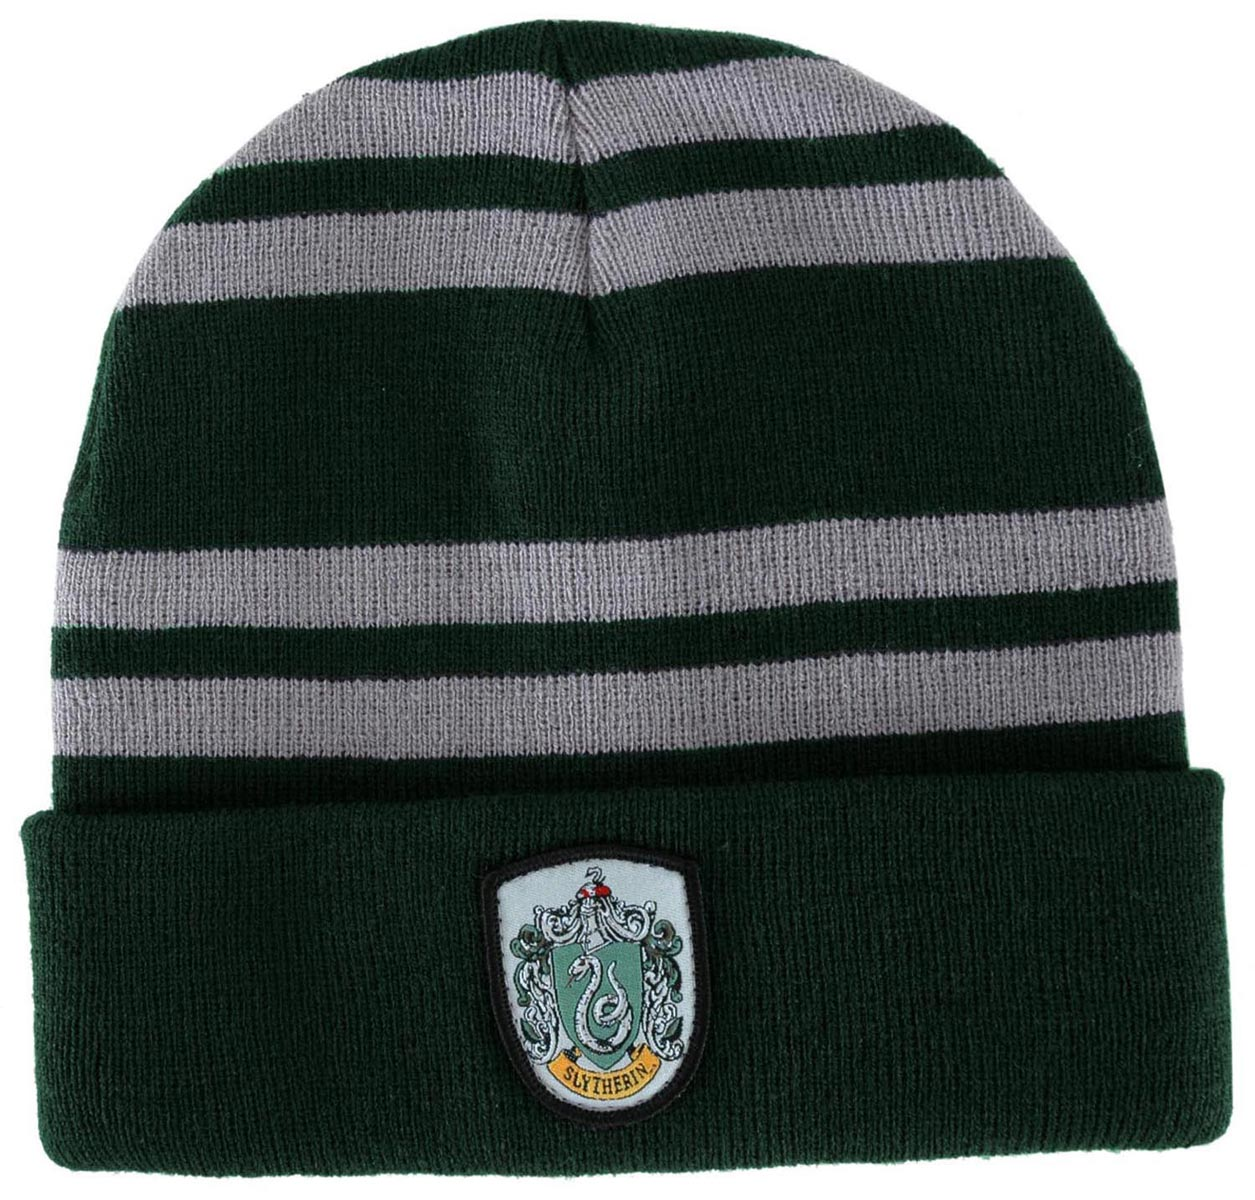 Harry Potter Slytherin House Knit Hat Costume Beanie Adult